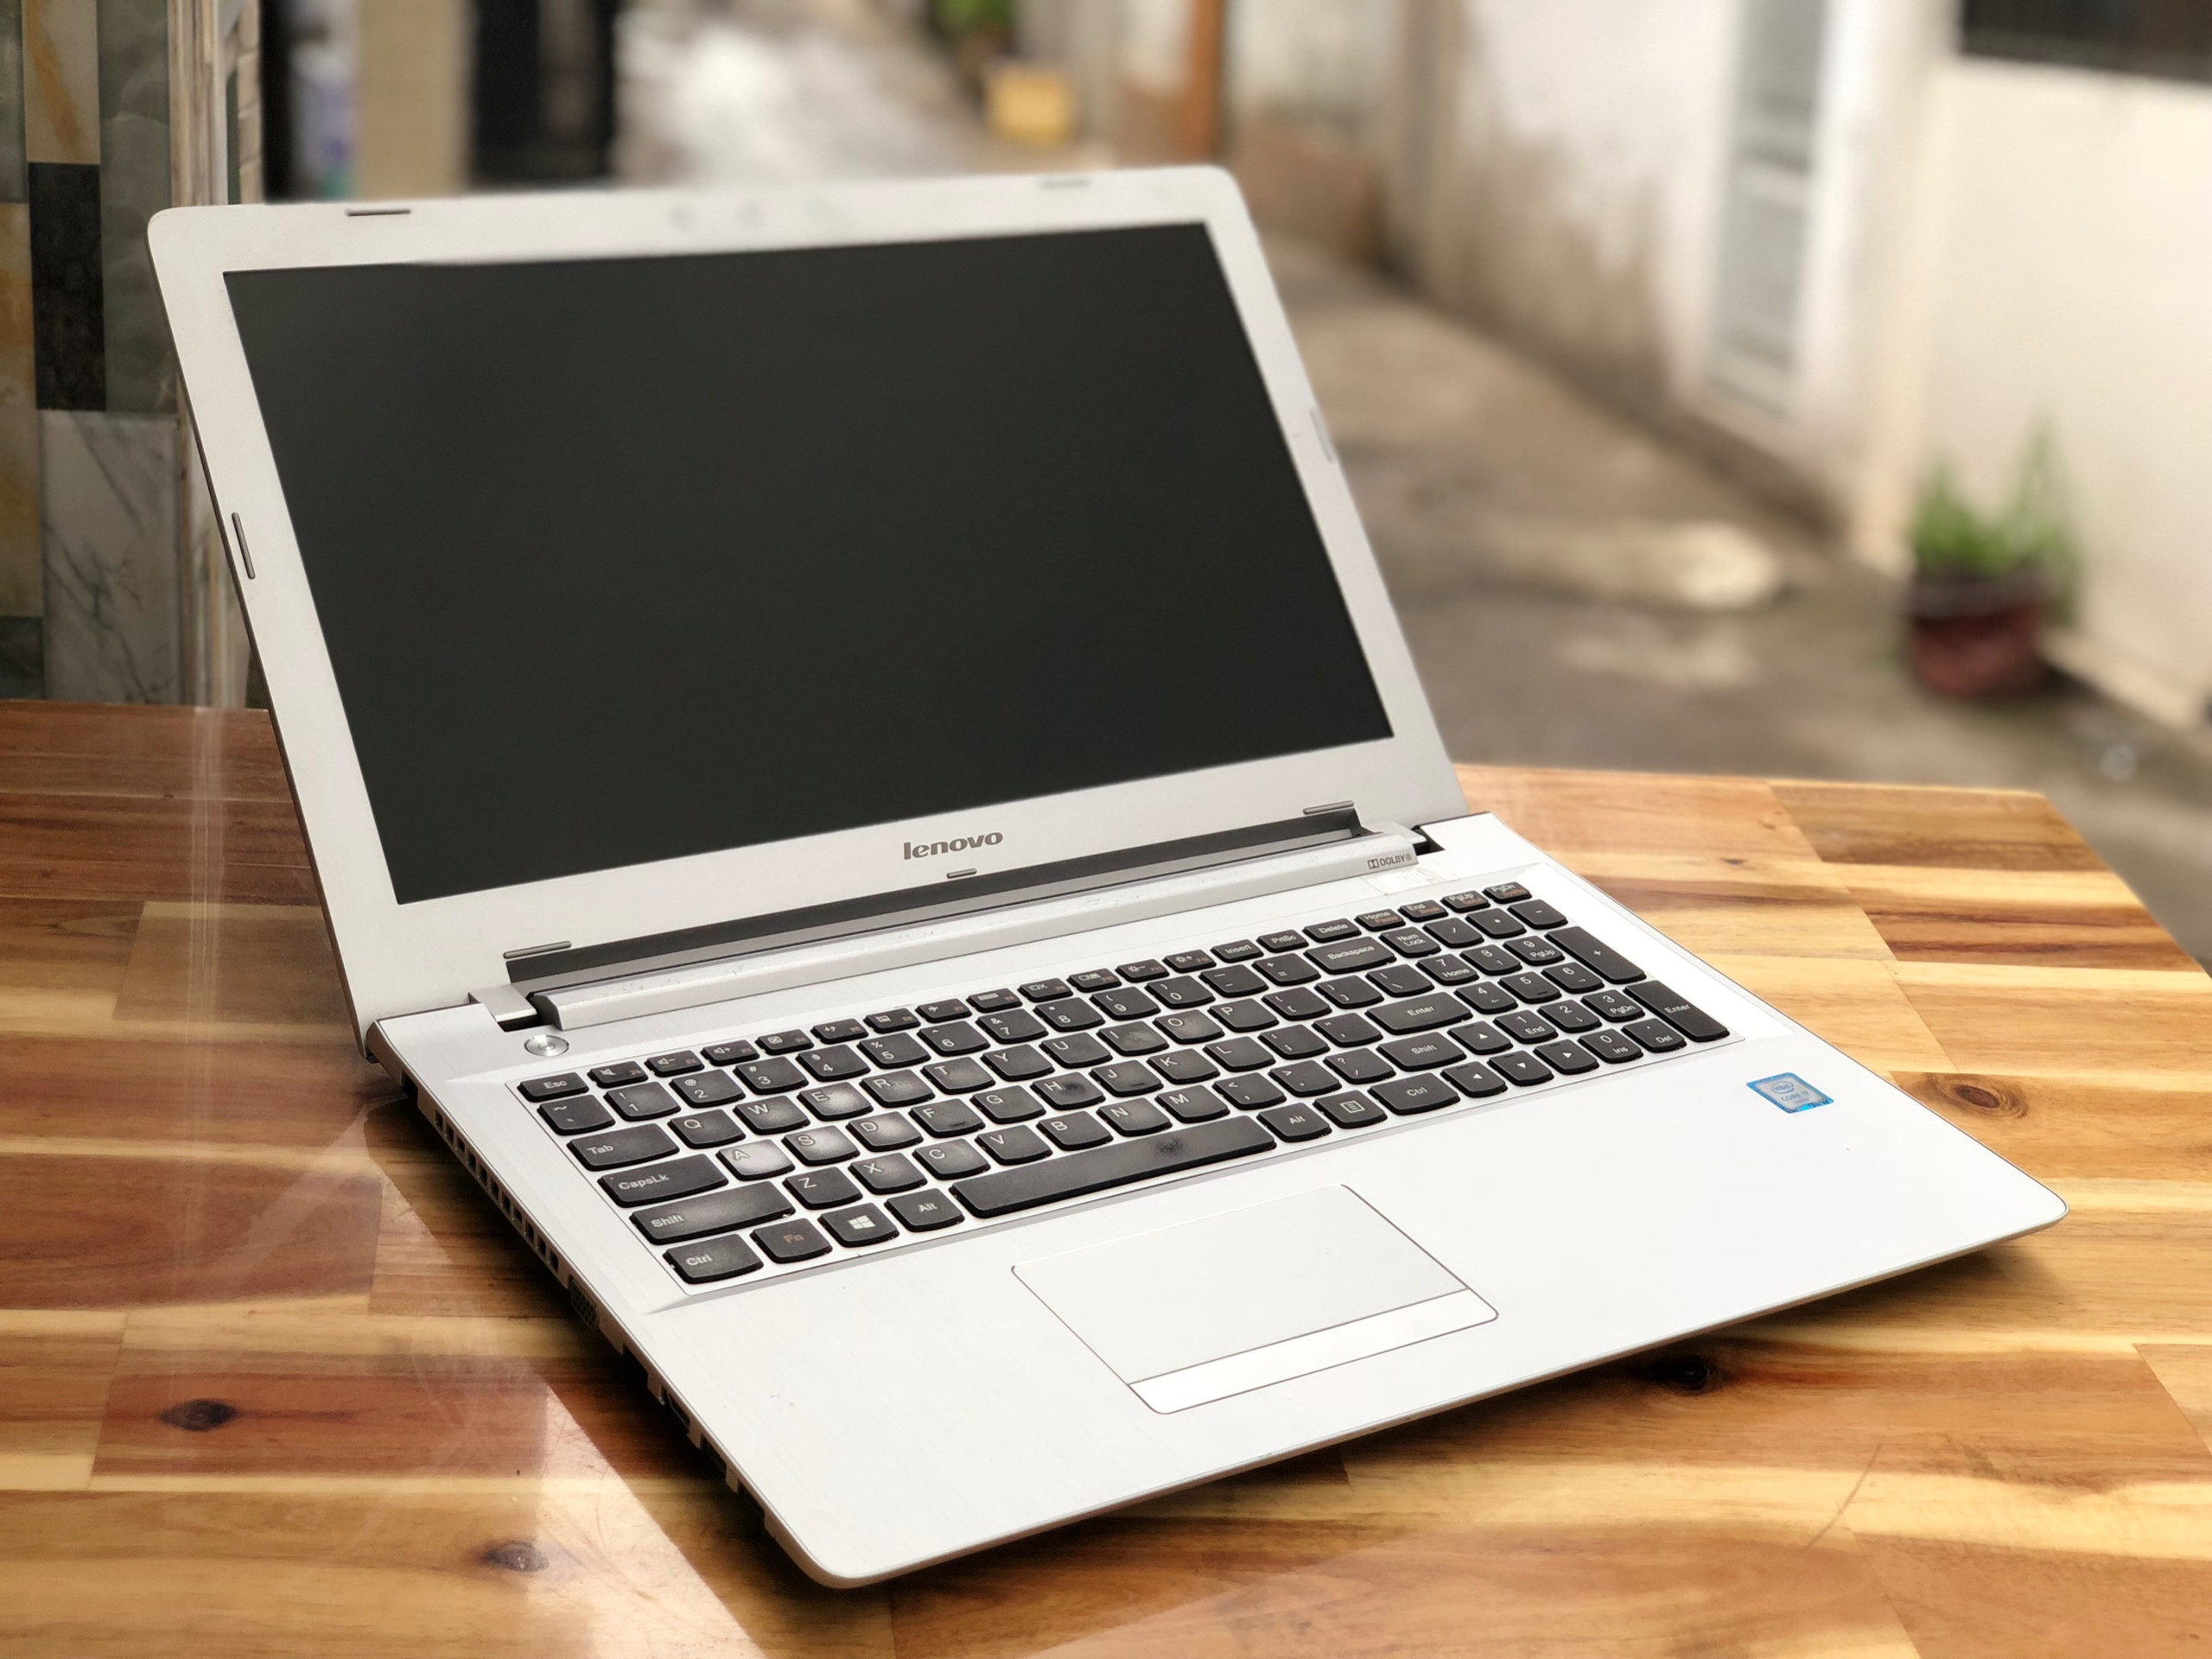 Laptop Lenovo ideapad 500-15ISK, I7 6500U 8G 1T Vga 4G Full HD Like new zin 100% Giá rẻ4